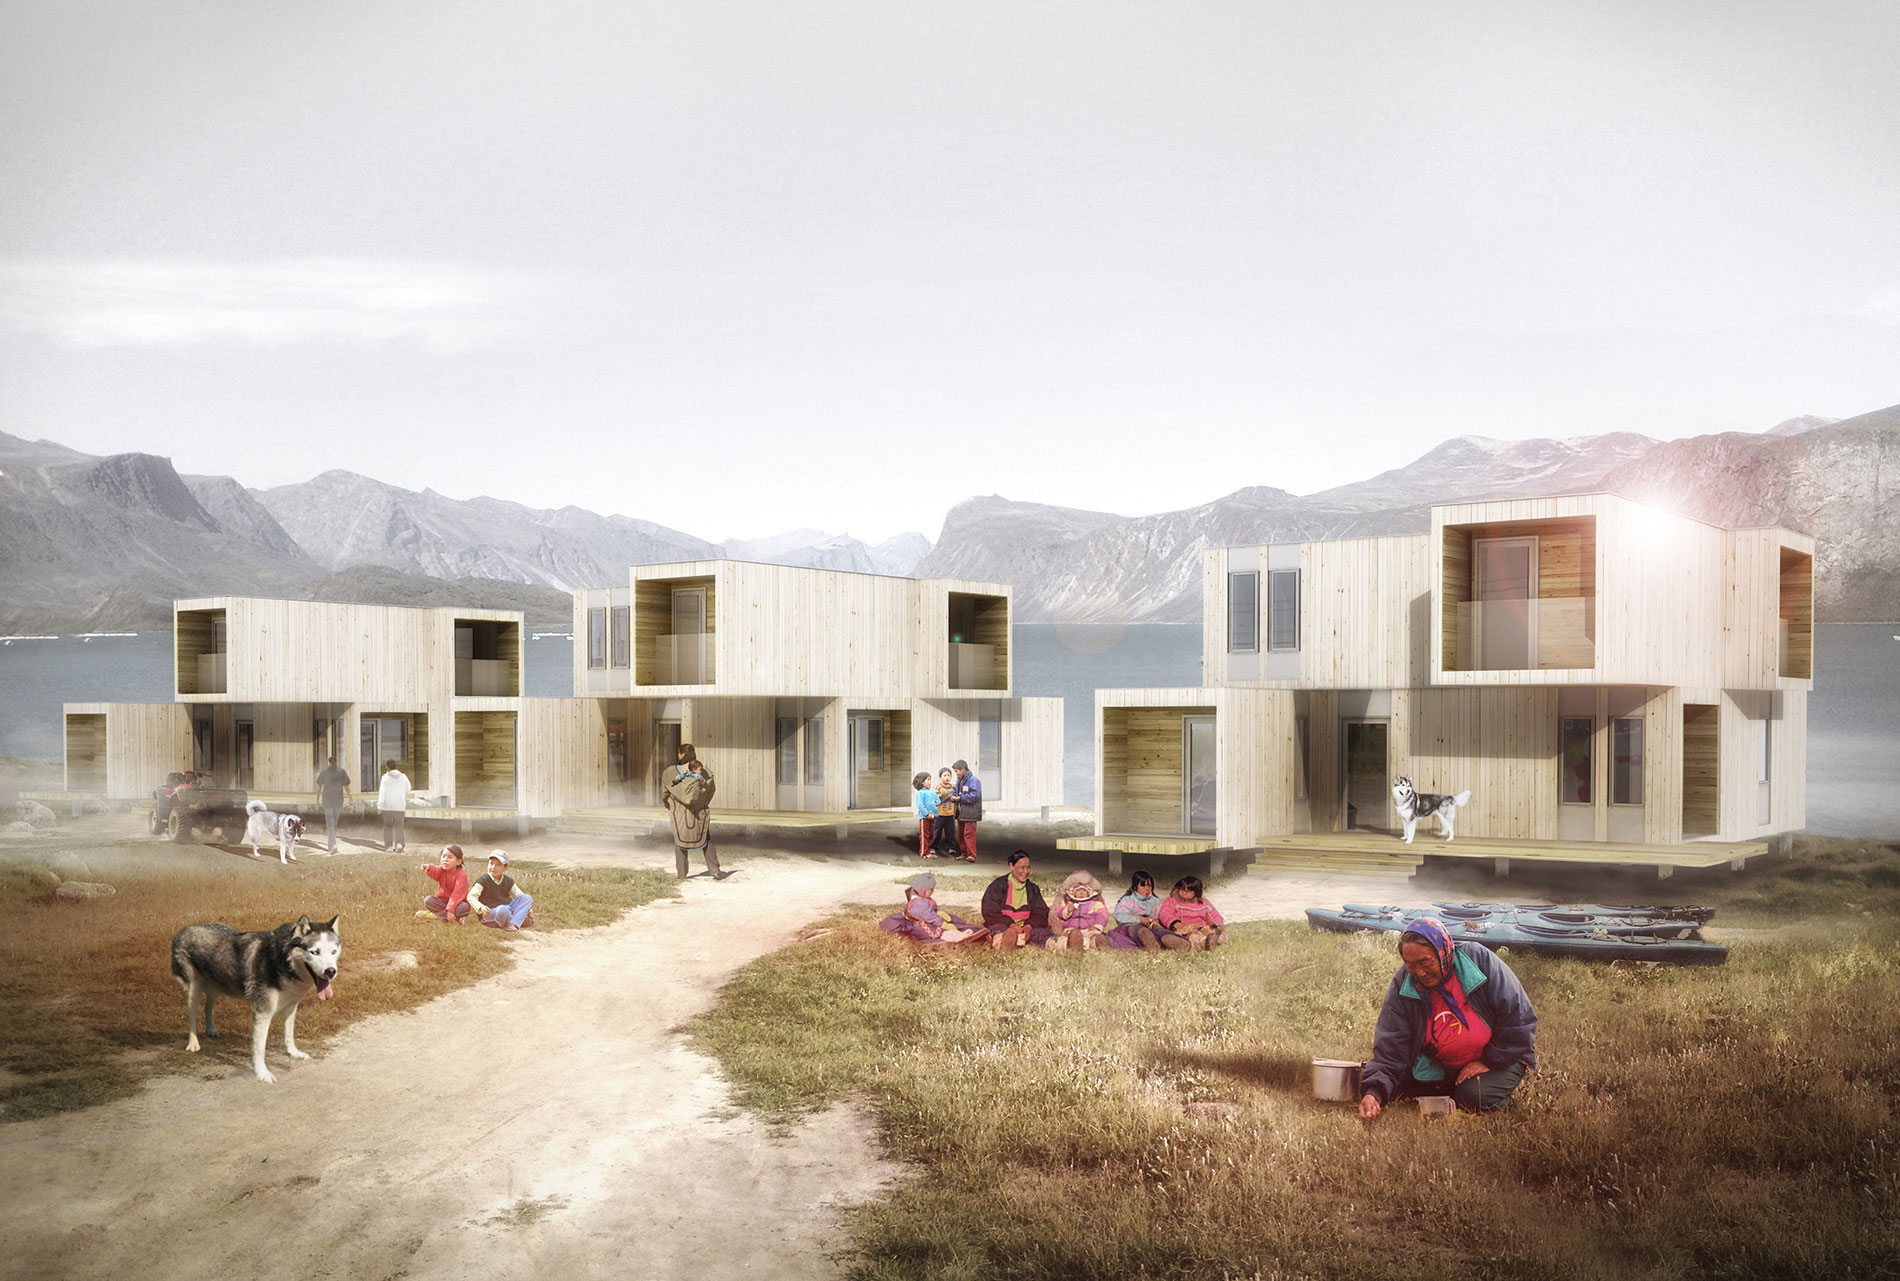 Guillaume-Levesque-architecte-Pangnirtung-habitations-conteneurs01